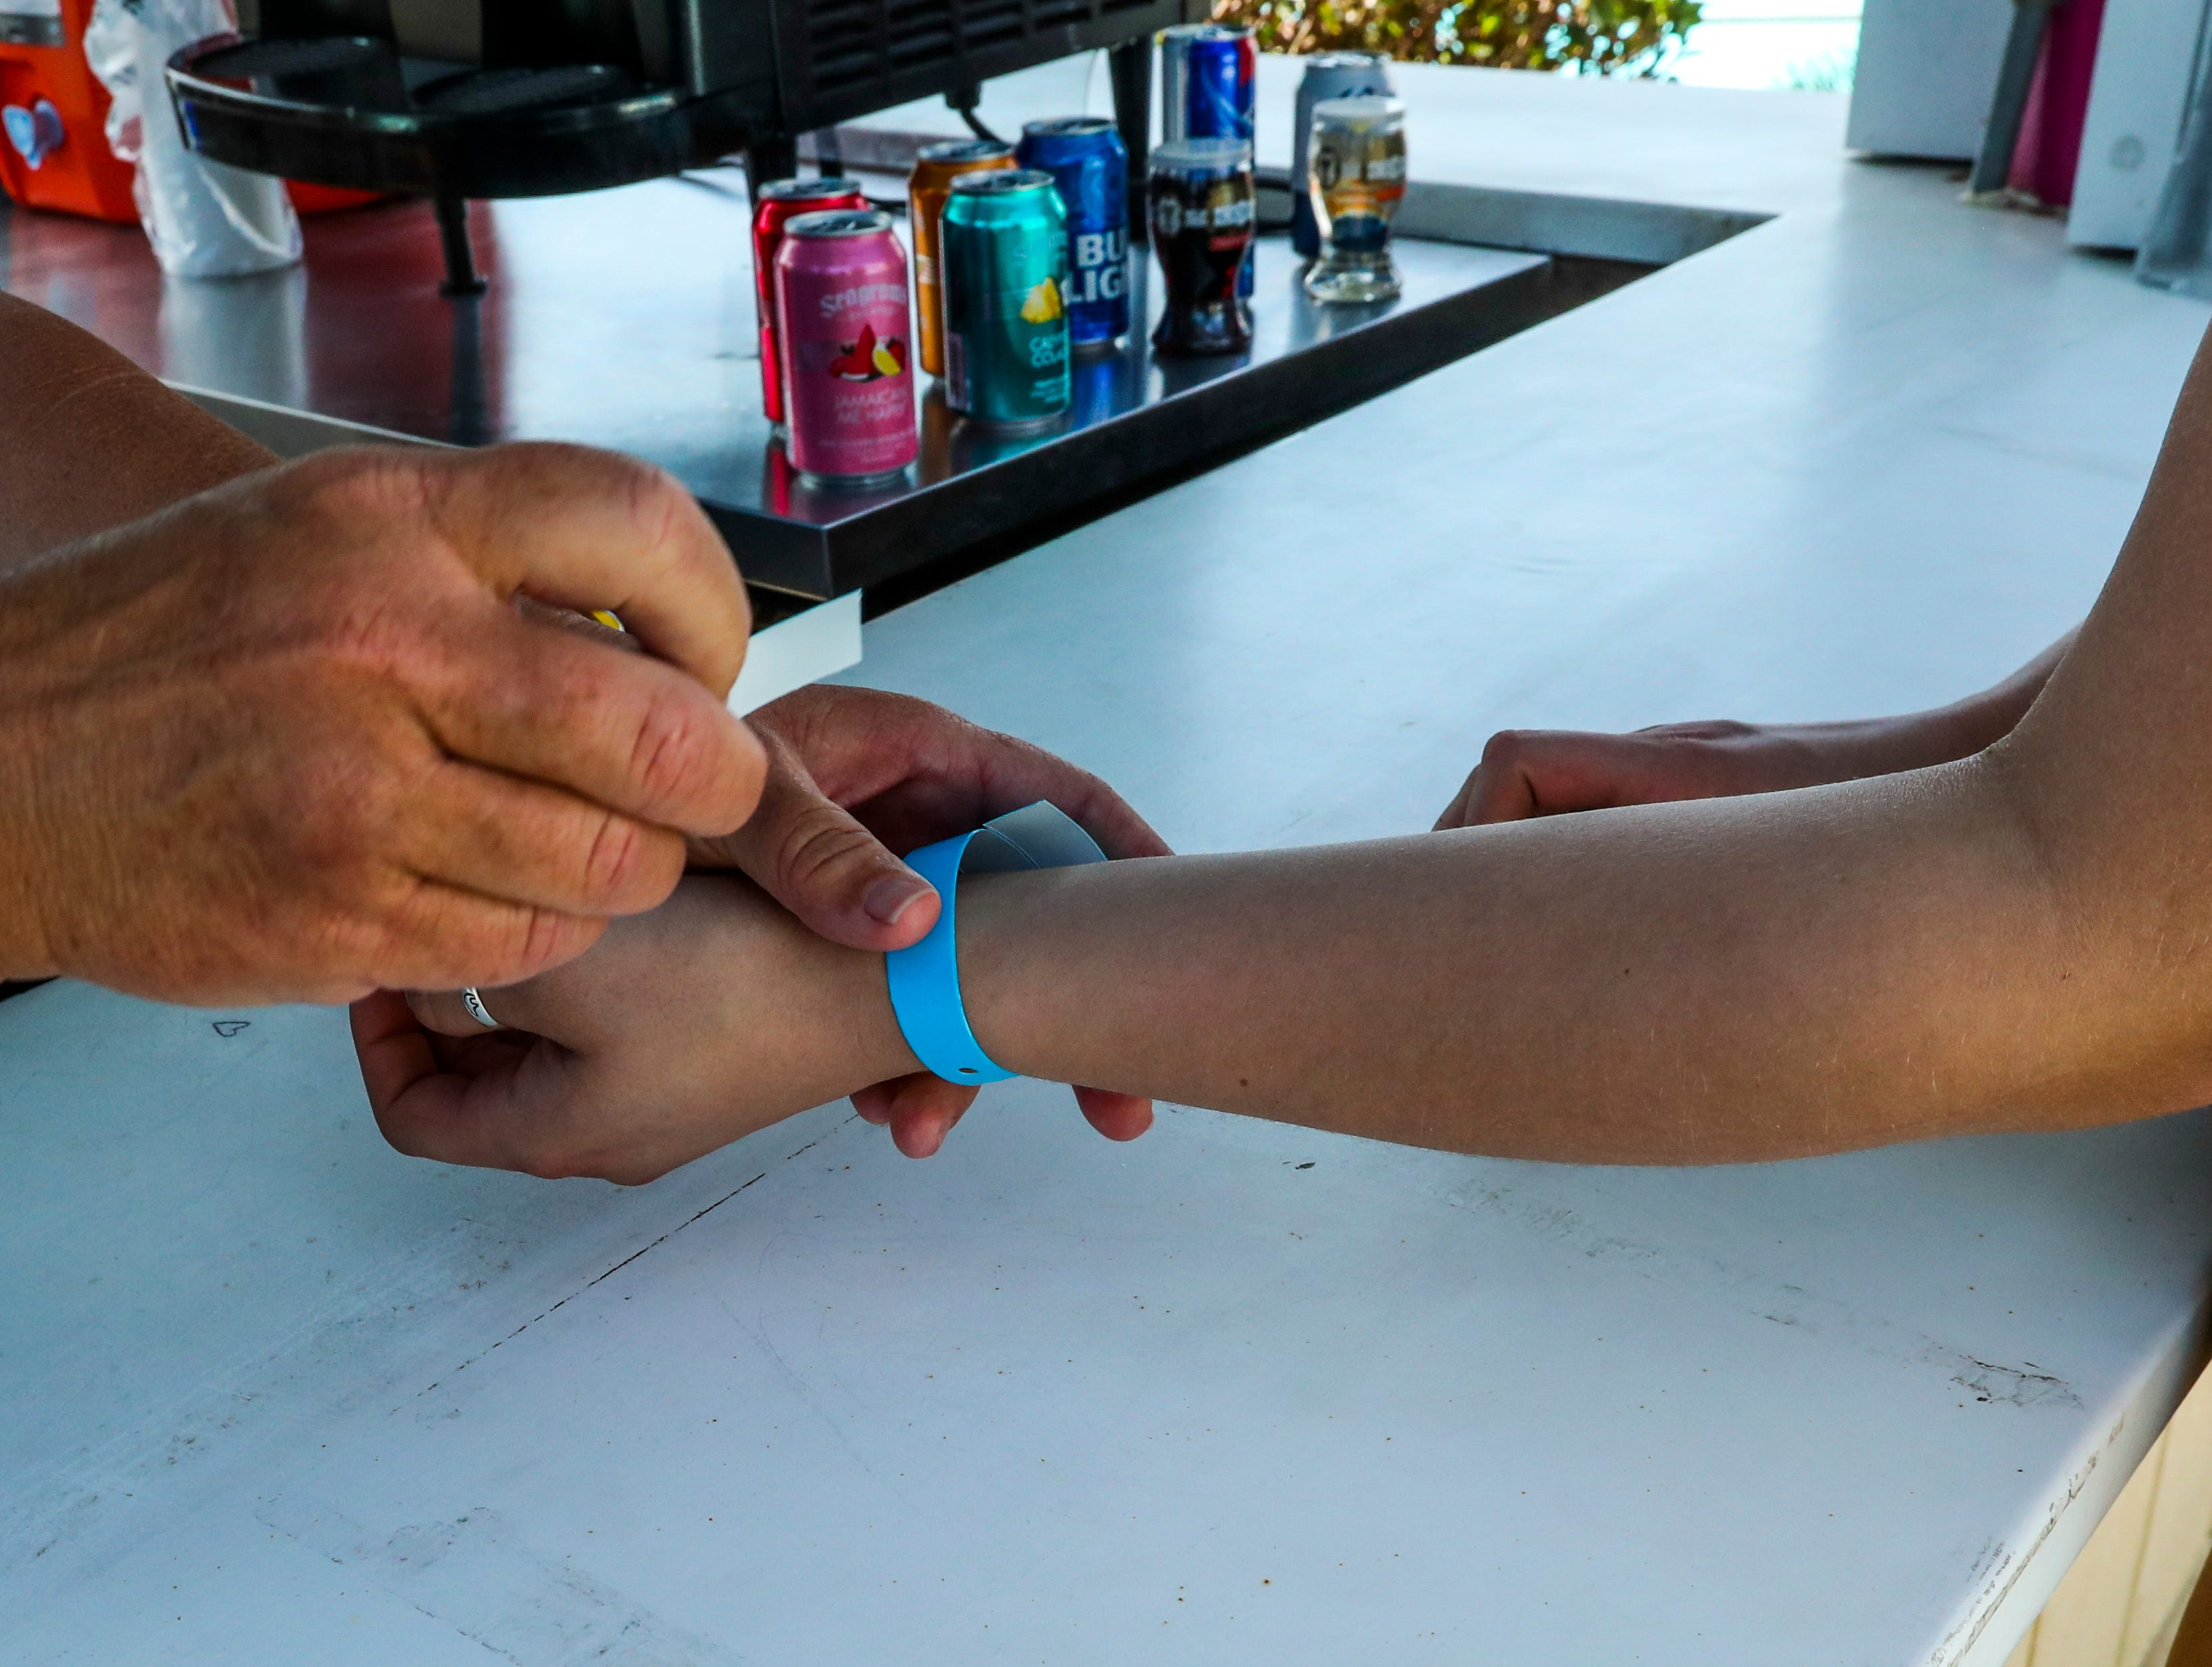 Kate Gehin pulls a ticket off the wristband of Madison Flood, 21, visiting from Michigan. Alcohol sales have been steady on the opening day. Sun Splash is opening for it's 2019 season - the first season that will include sales of beer, wine and wine smoothies. Blue wrist bands are handed out after showing your license. The wrist band has two tickets on it. Each person is allowed two drinks. The wine slushes were are popular item to drink.